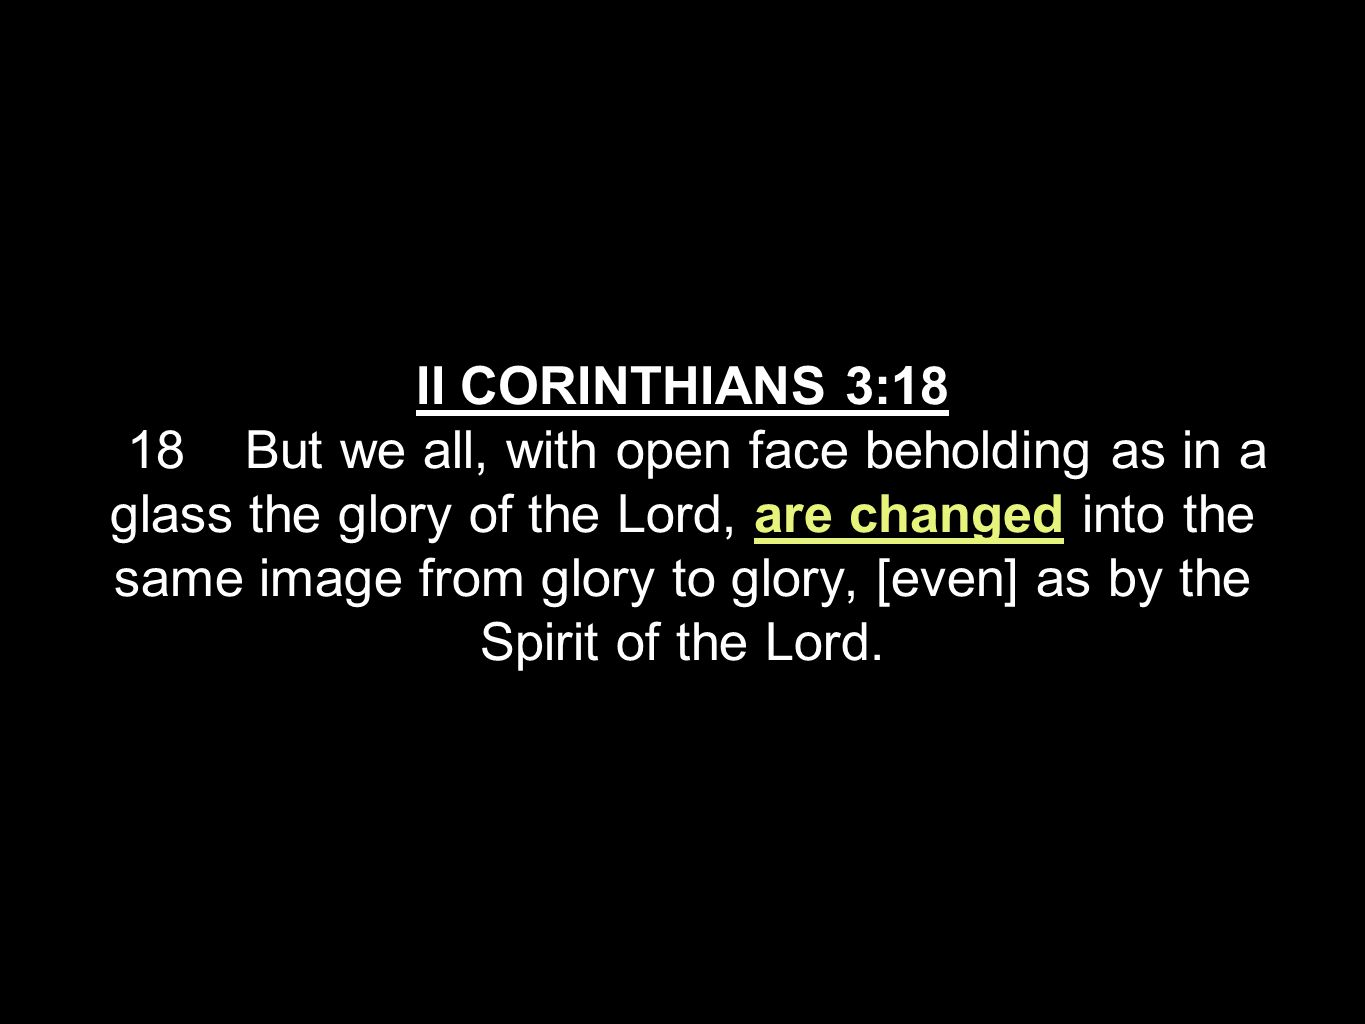 II CORINTHIANS 3:18 18 But we all, with open face beholding as in a glass the glory of the Lord, are changed into the same image from glory to glory, [even] as by the Spirit of the Lord.